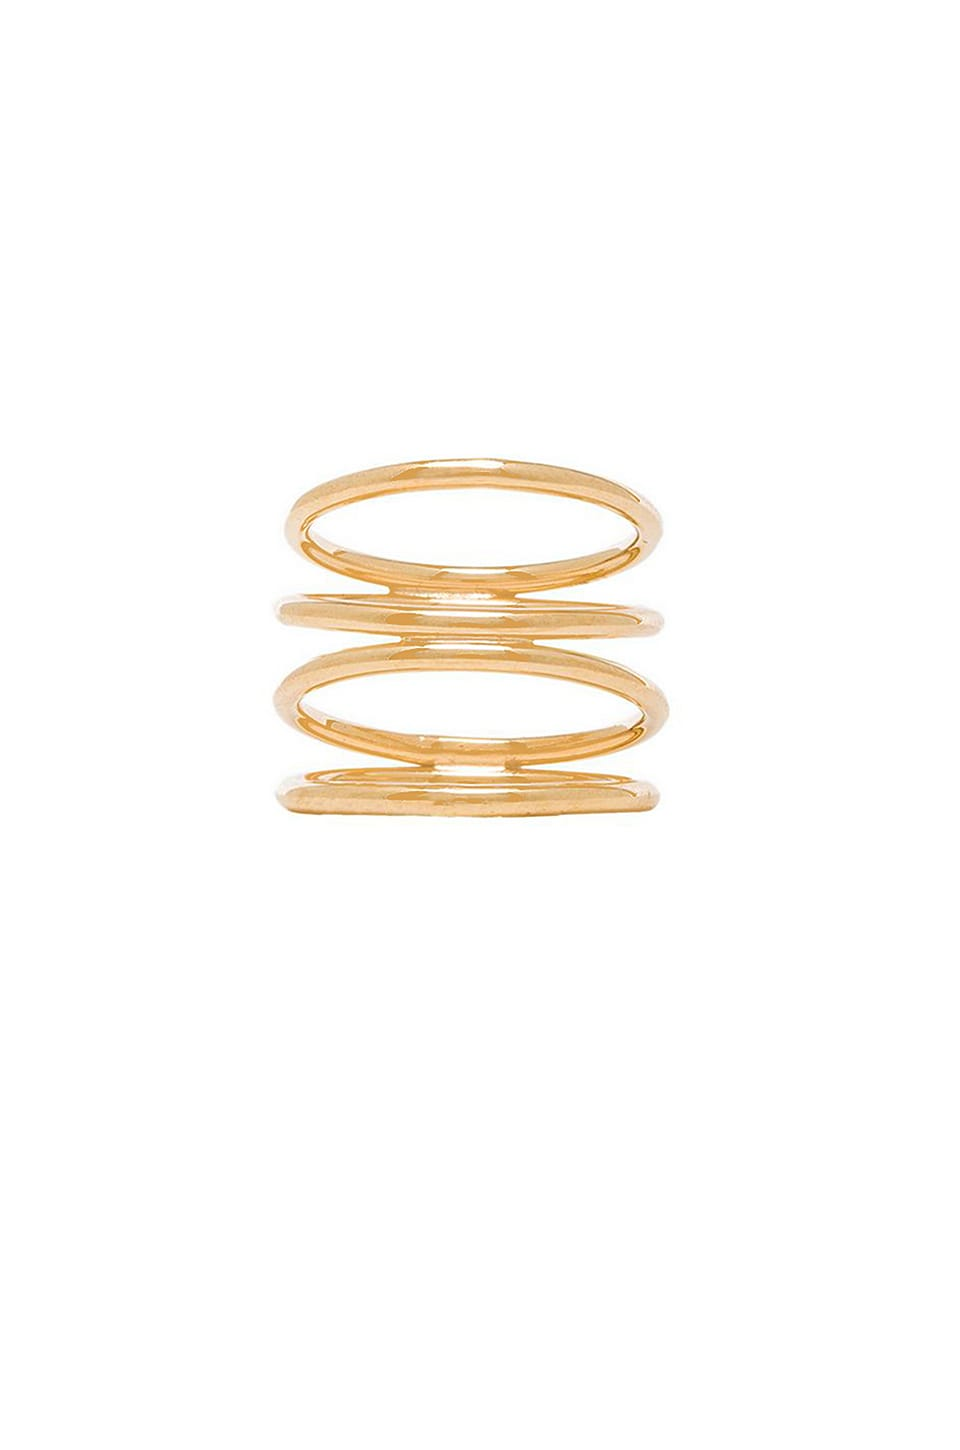 joolz by Martha Calvo Staircase Ring in Gold